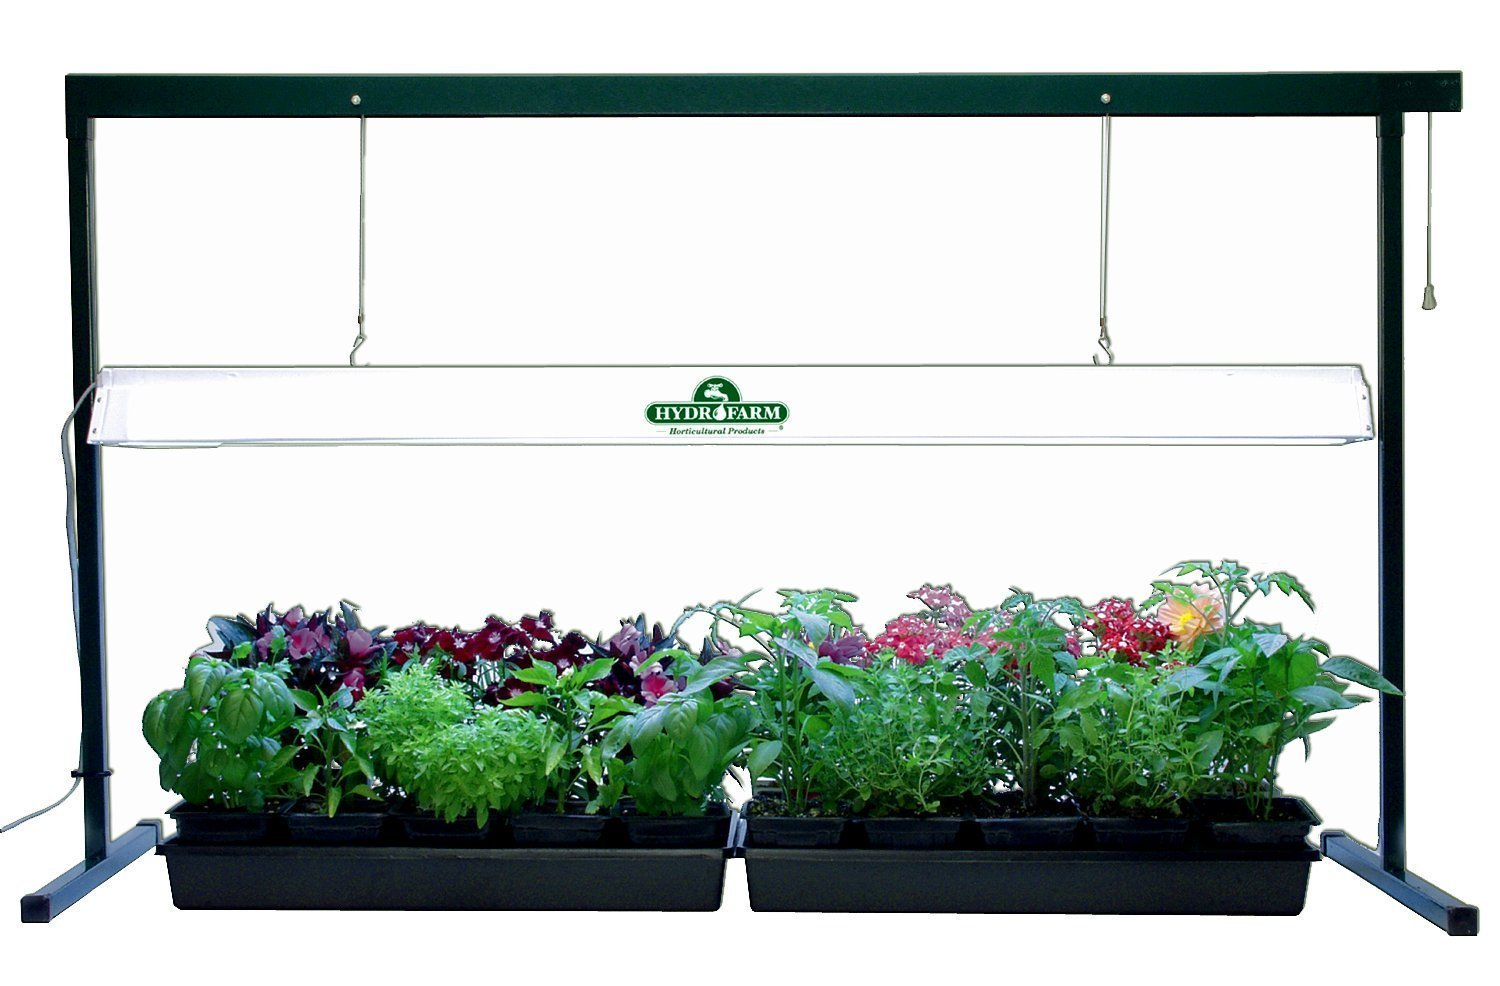 Hydrofarm Growing Supplies Hydroponics Systems Zone